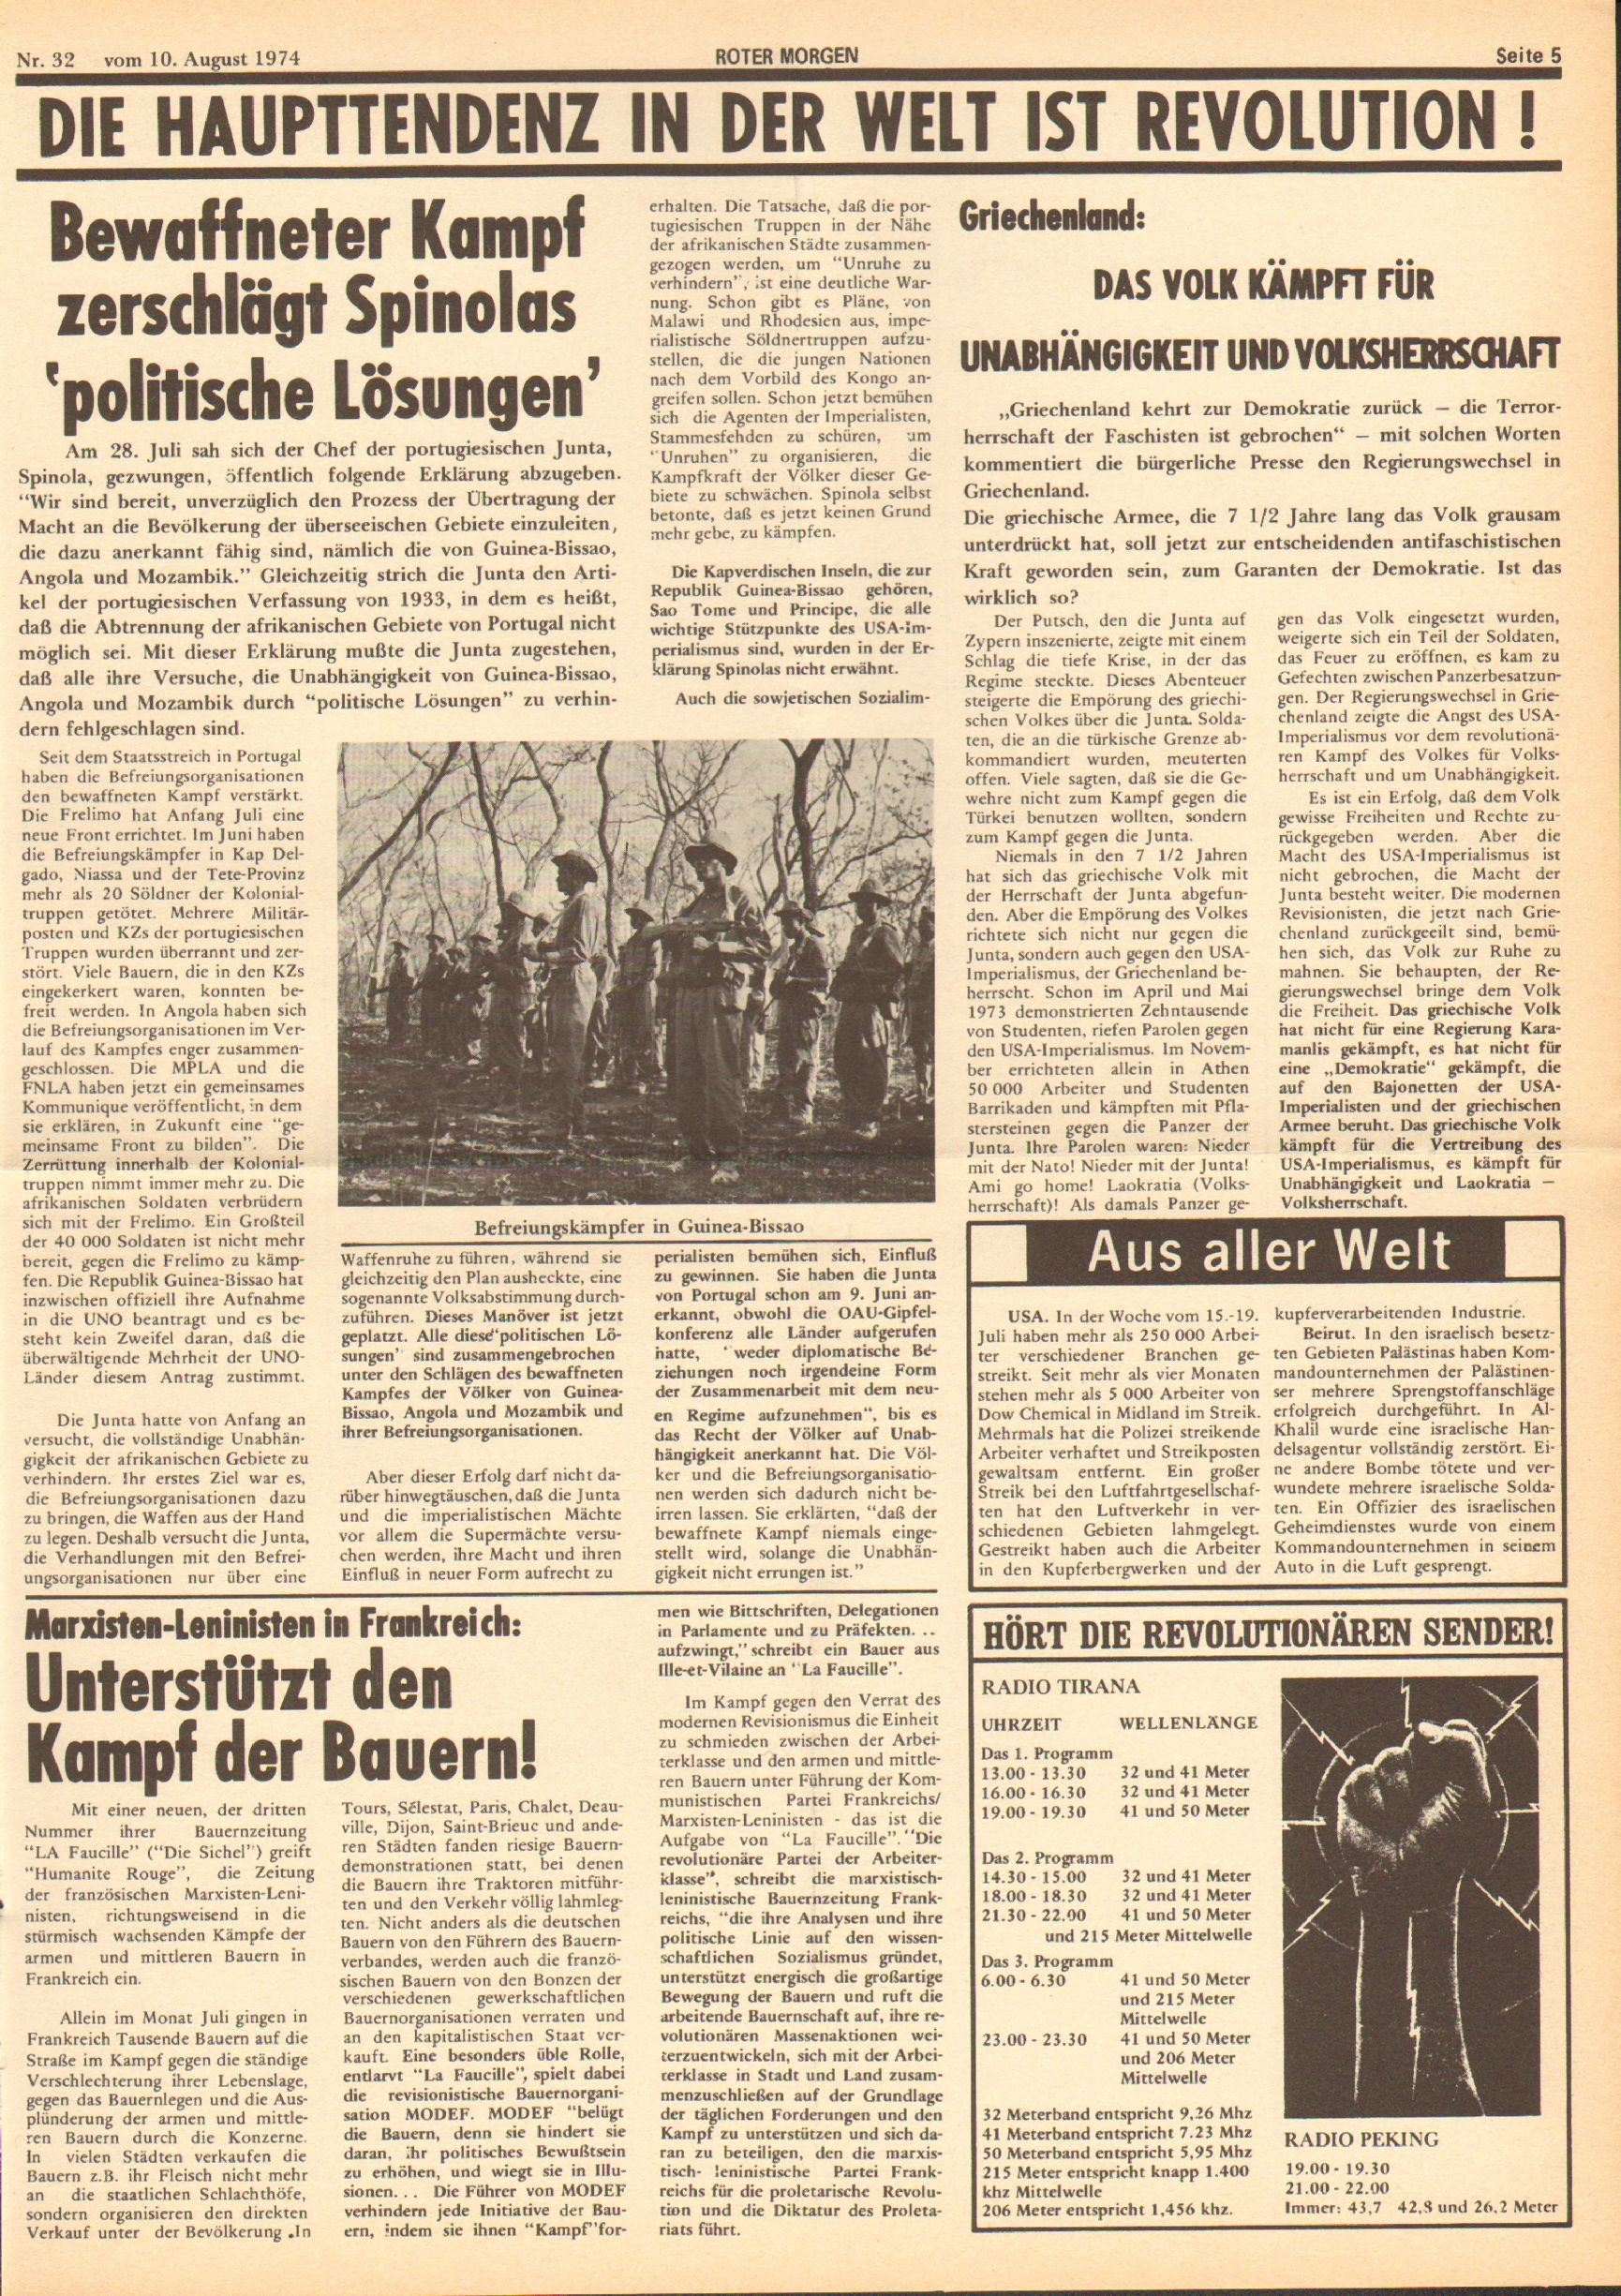 Roter Morgen, 8. Jg., 10. August 1974, Nr. 32, Seite 5